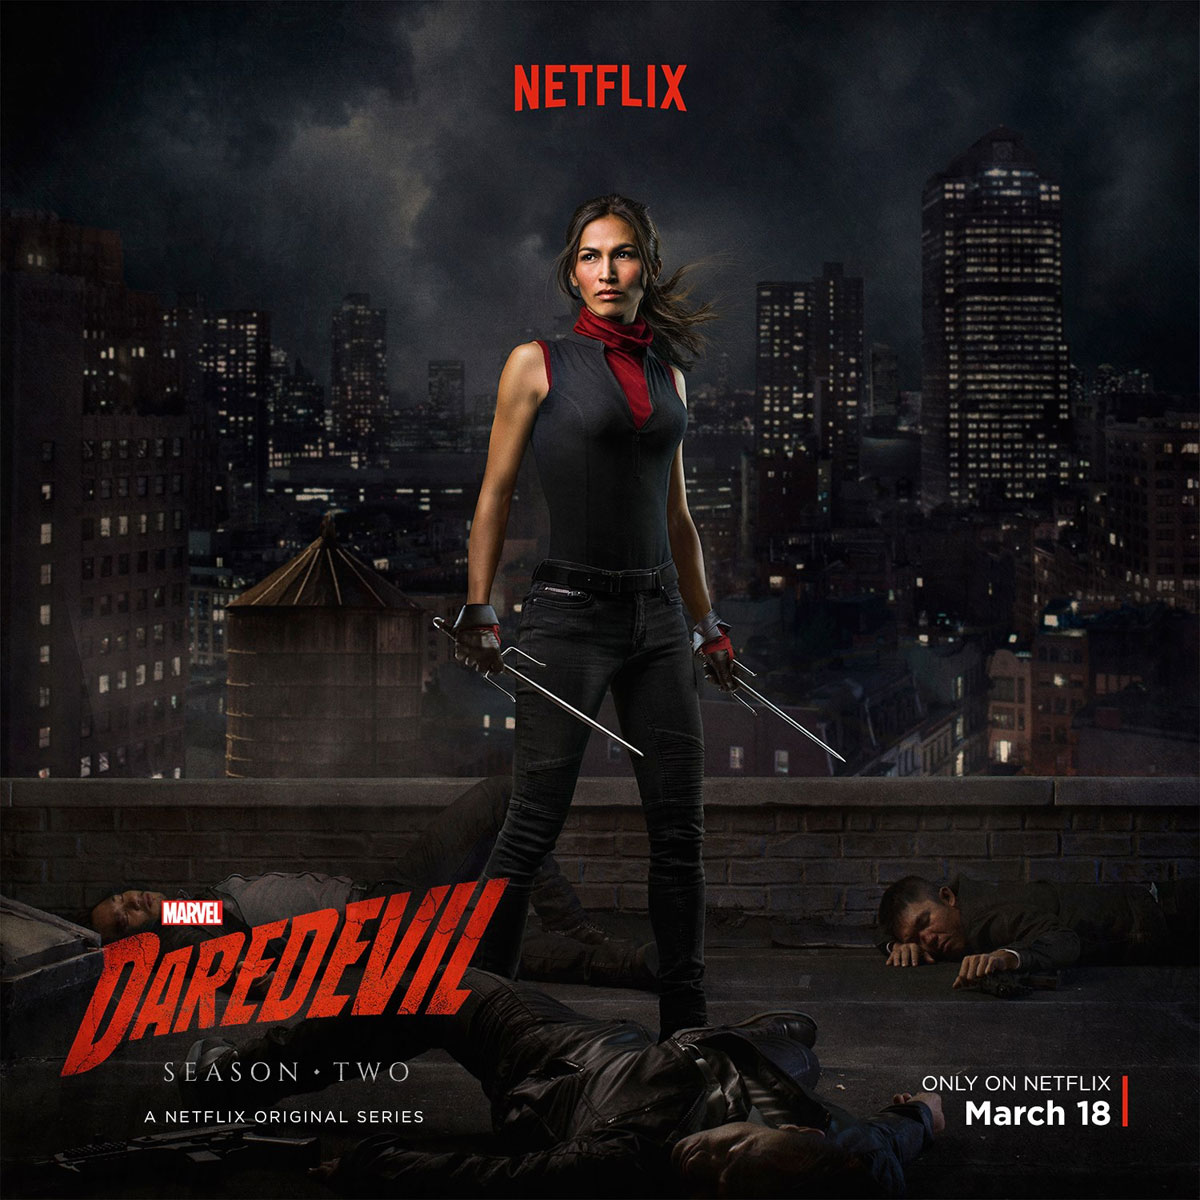 M.A.A.C. – Latest Poster For Marvel's DAREDEVIL Season 2. UPDATE ...